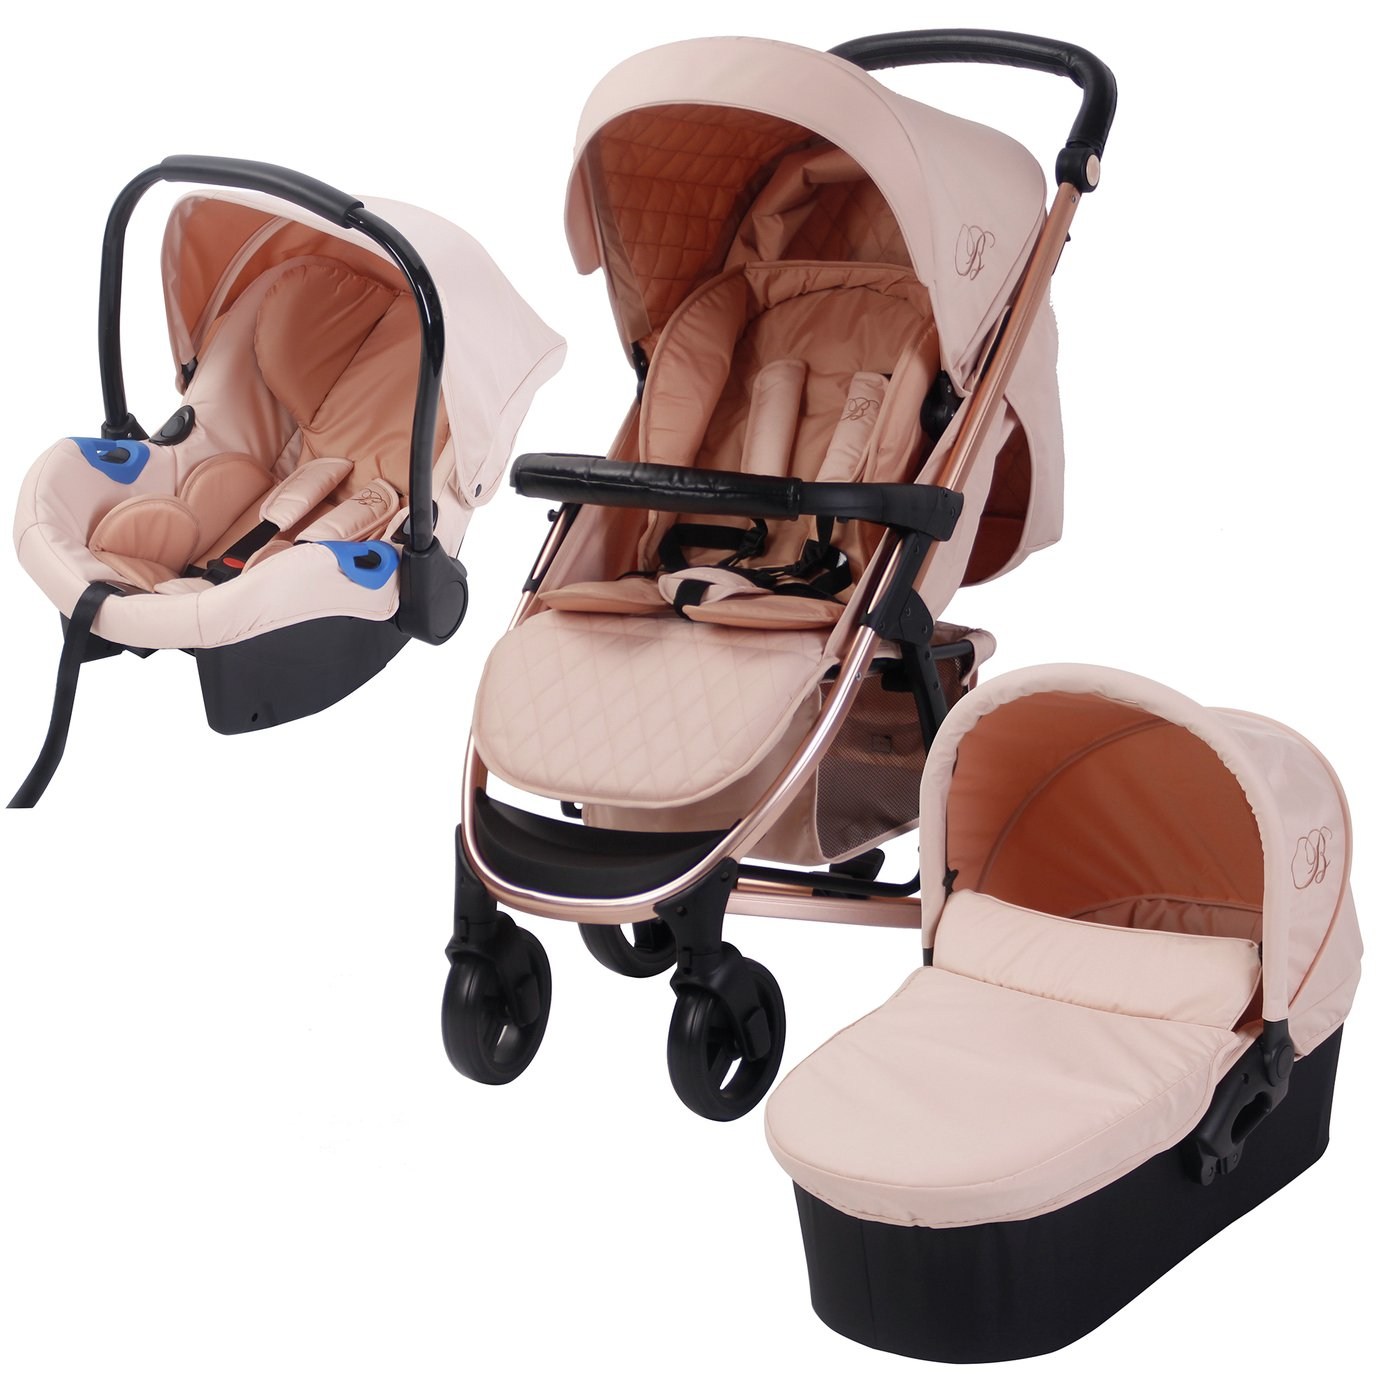 Carrycot Raincover Compatible with My Babiie Mb200